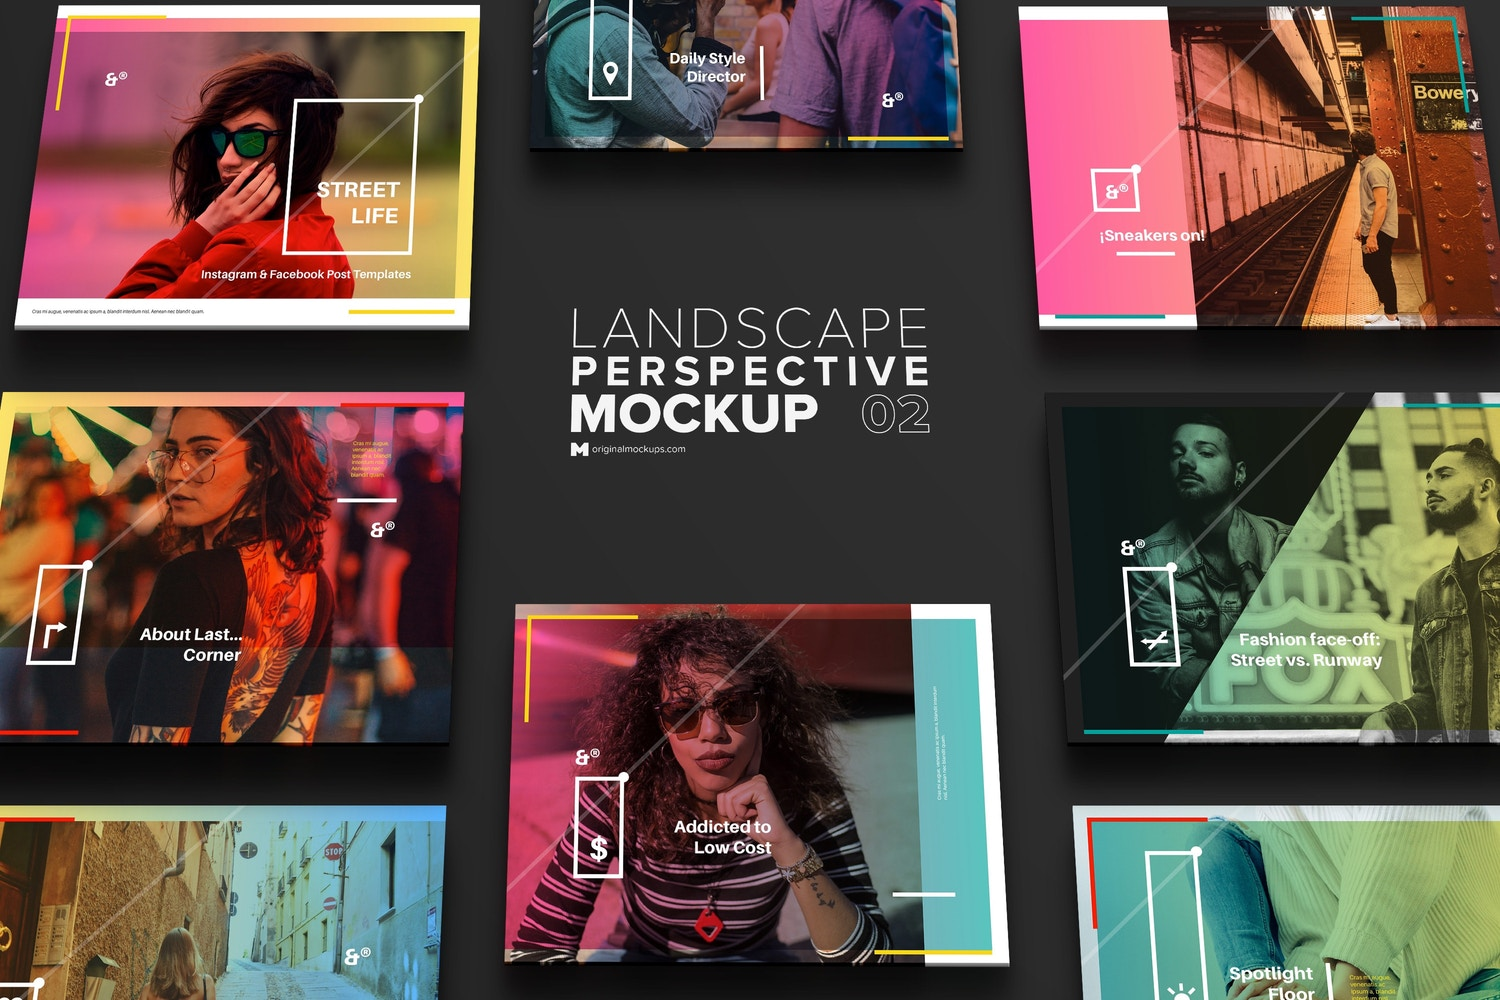 Landscape Perspective Grid Mockup for Instagram Post